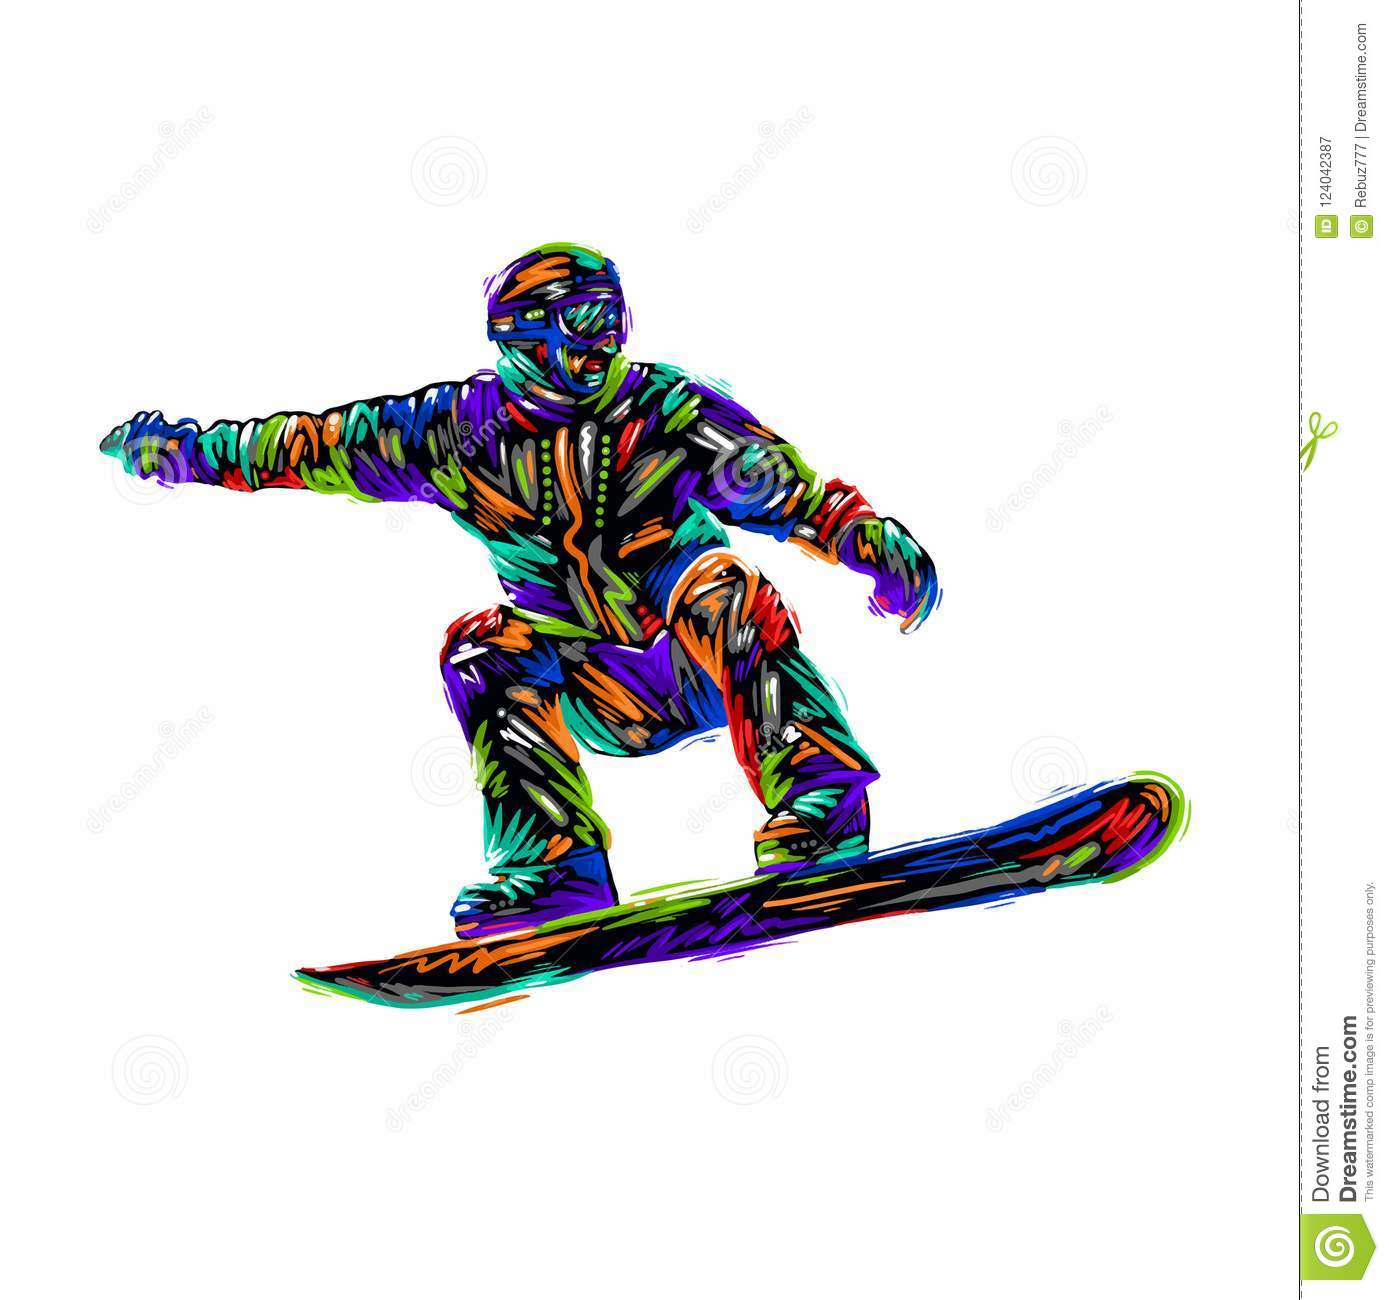 baf34a3ee65f Colored hand drawing sketch snowboarder on a grunge background. Vector  illustration snowboard design art. More similar stock illustrations